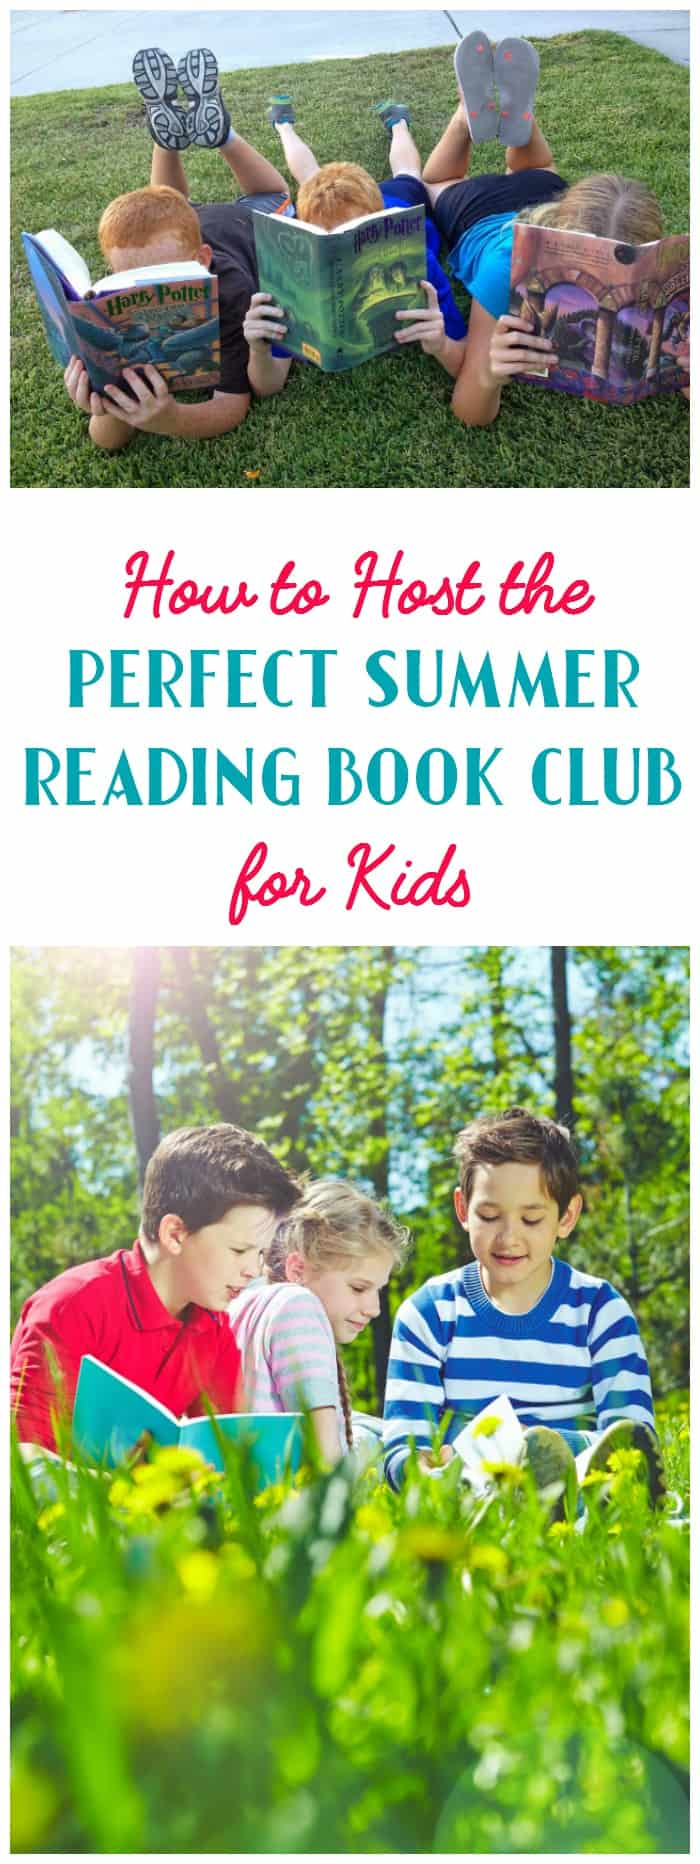 Find out how to host the perfect summer reading book club for kids in 7 easy steps!